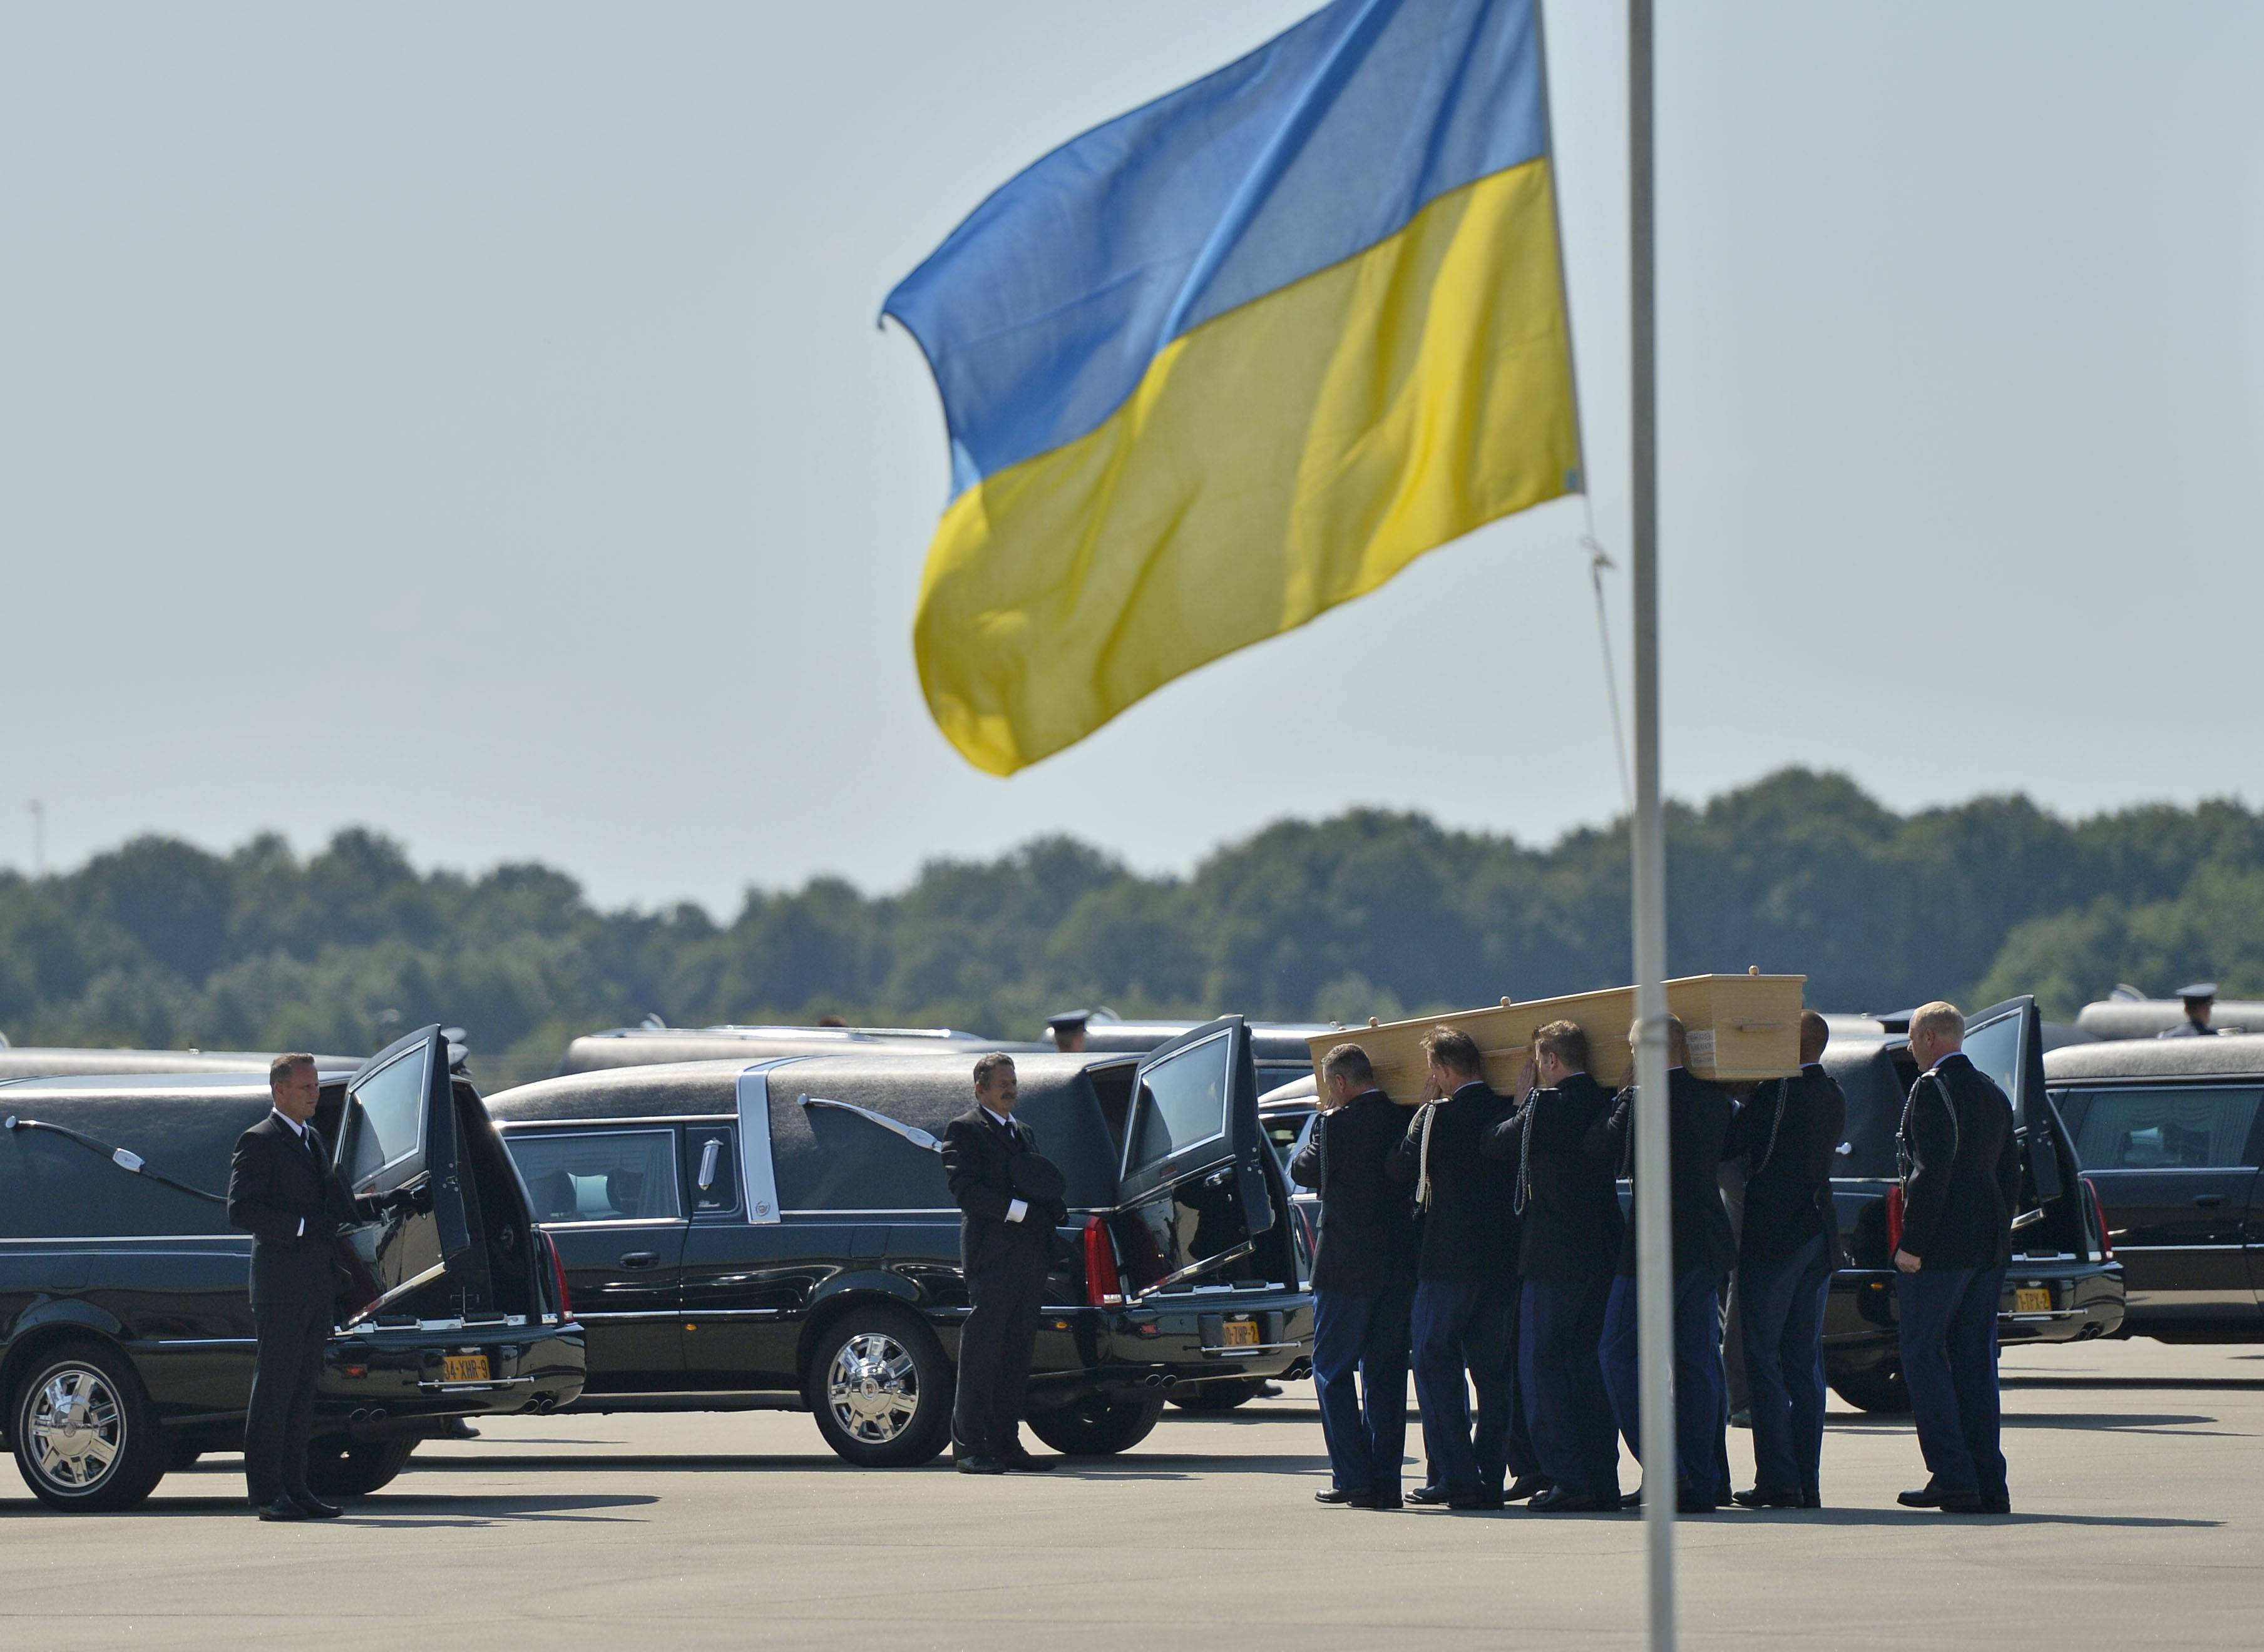 Soldiers load coffins into cars under a Ukrainian flag during a ceremony to mark the return of the first bodies, of passengers and crew killed in the downing of Malaysia Airlines Flight 17, from Ukraine at Eindhoven military air base Wednesday After being removed from the planes, the bodies are to be taken in a convoy of hearses to a military barracks in the central city of Hilversum, where forensic experts will begin the painstaking task of identifying the bodies and returning them to their loved ones.